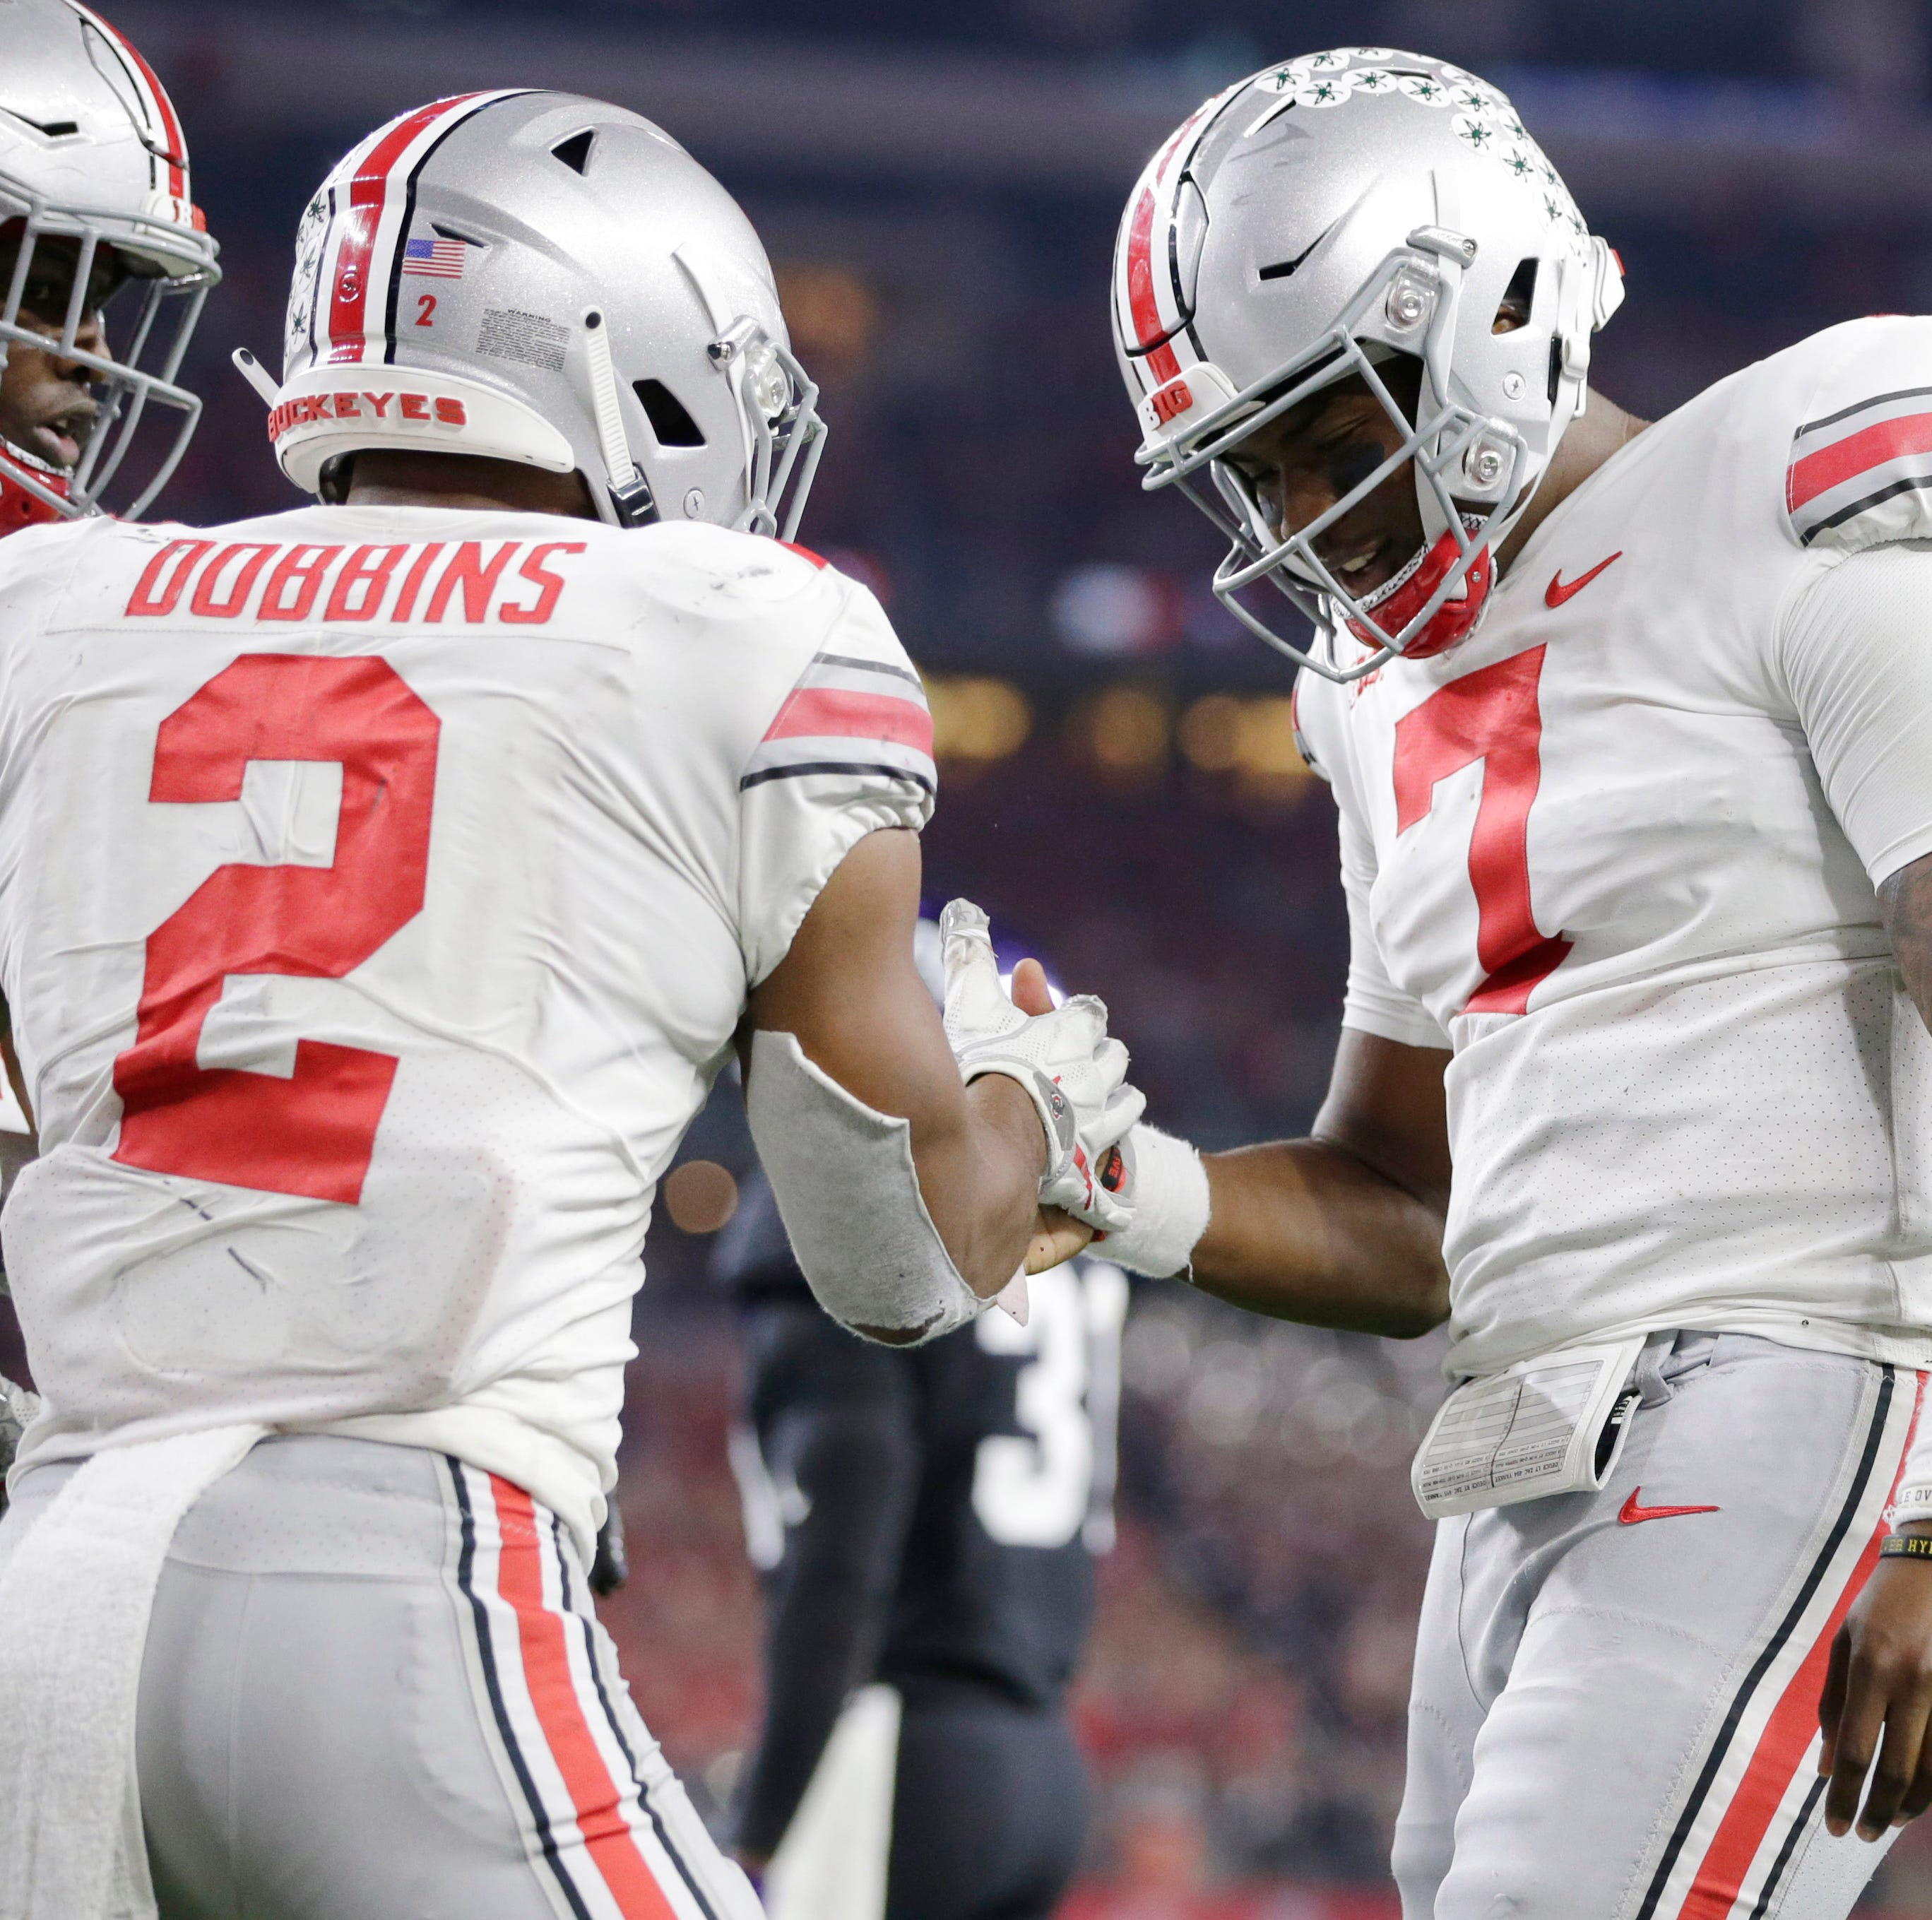 Ohio State vs. Tulane: Game time, TV channel, where to stream online